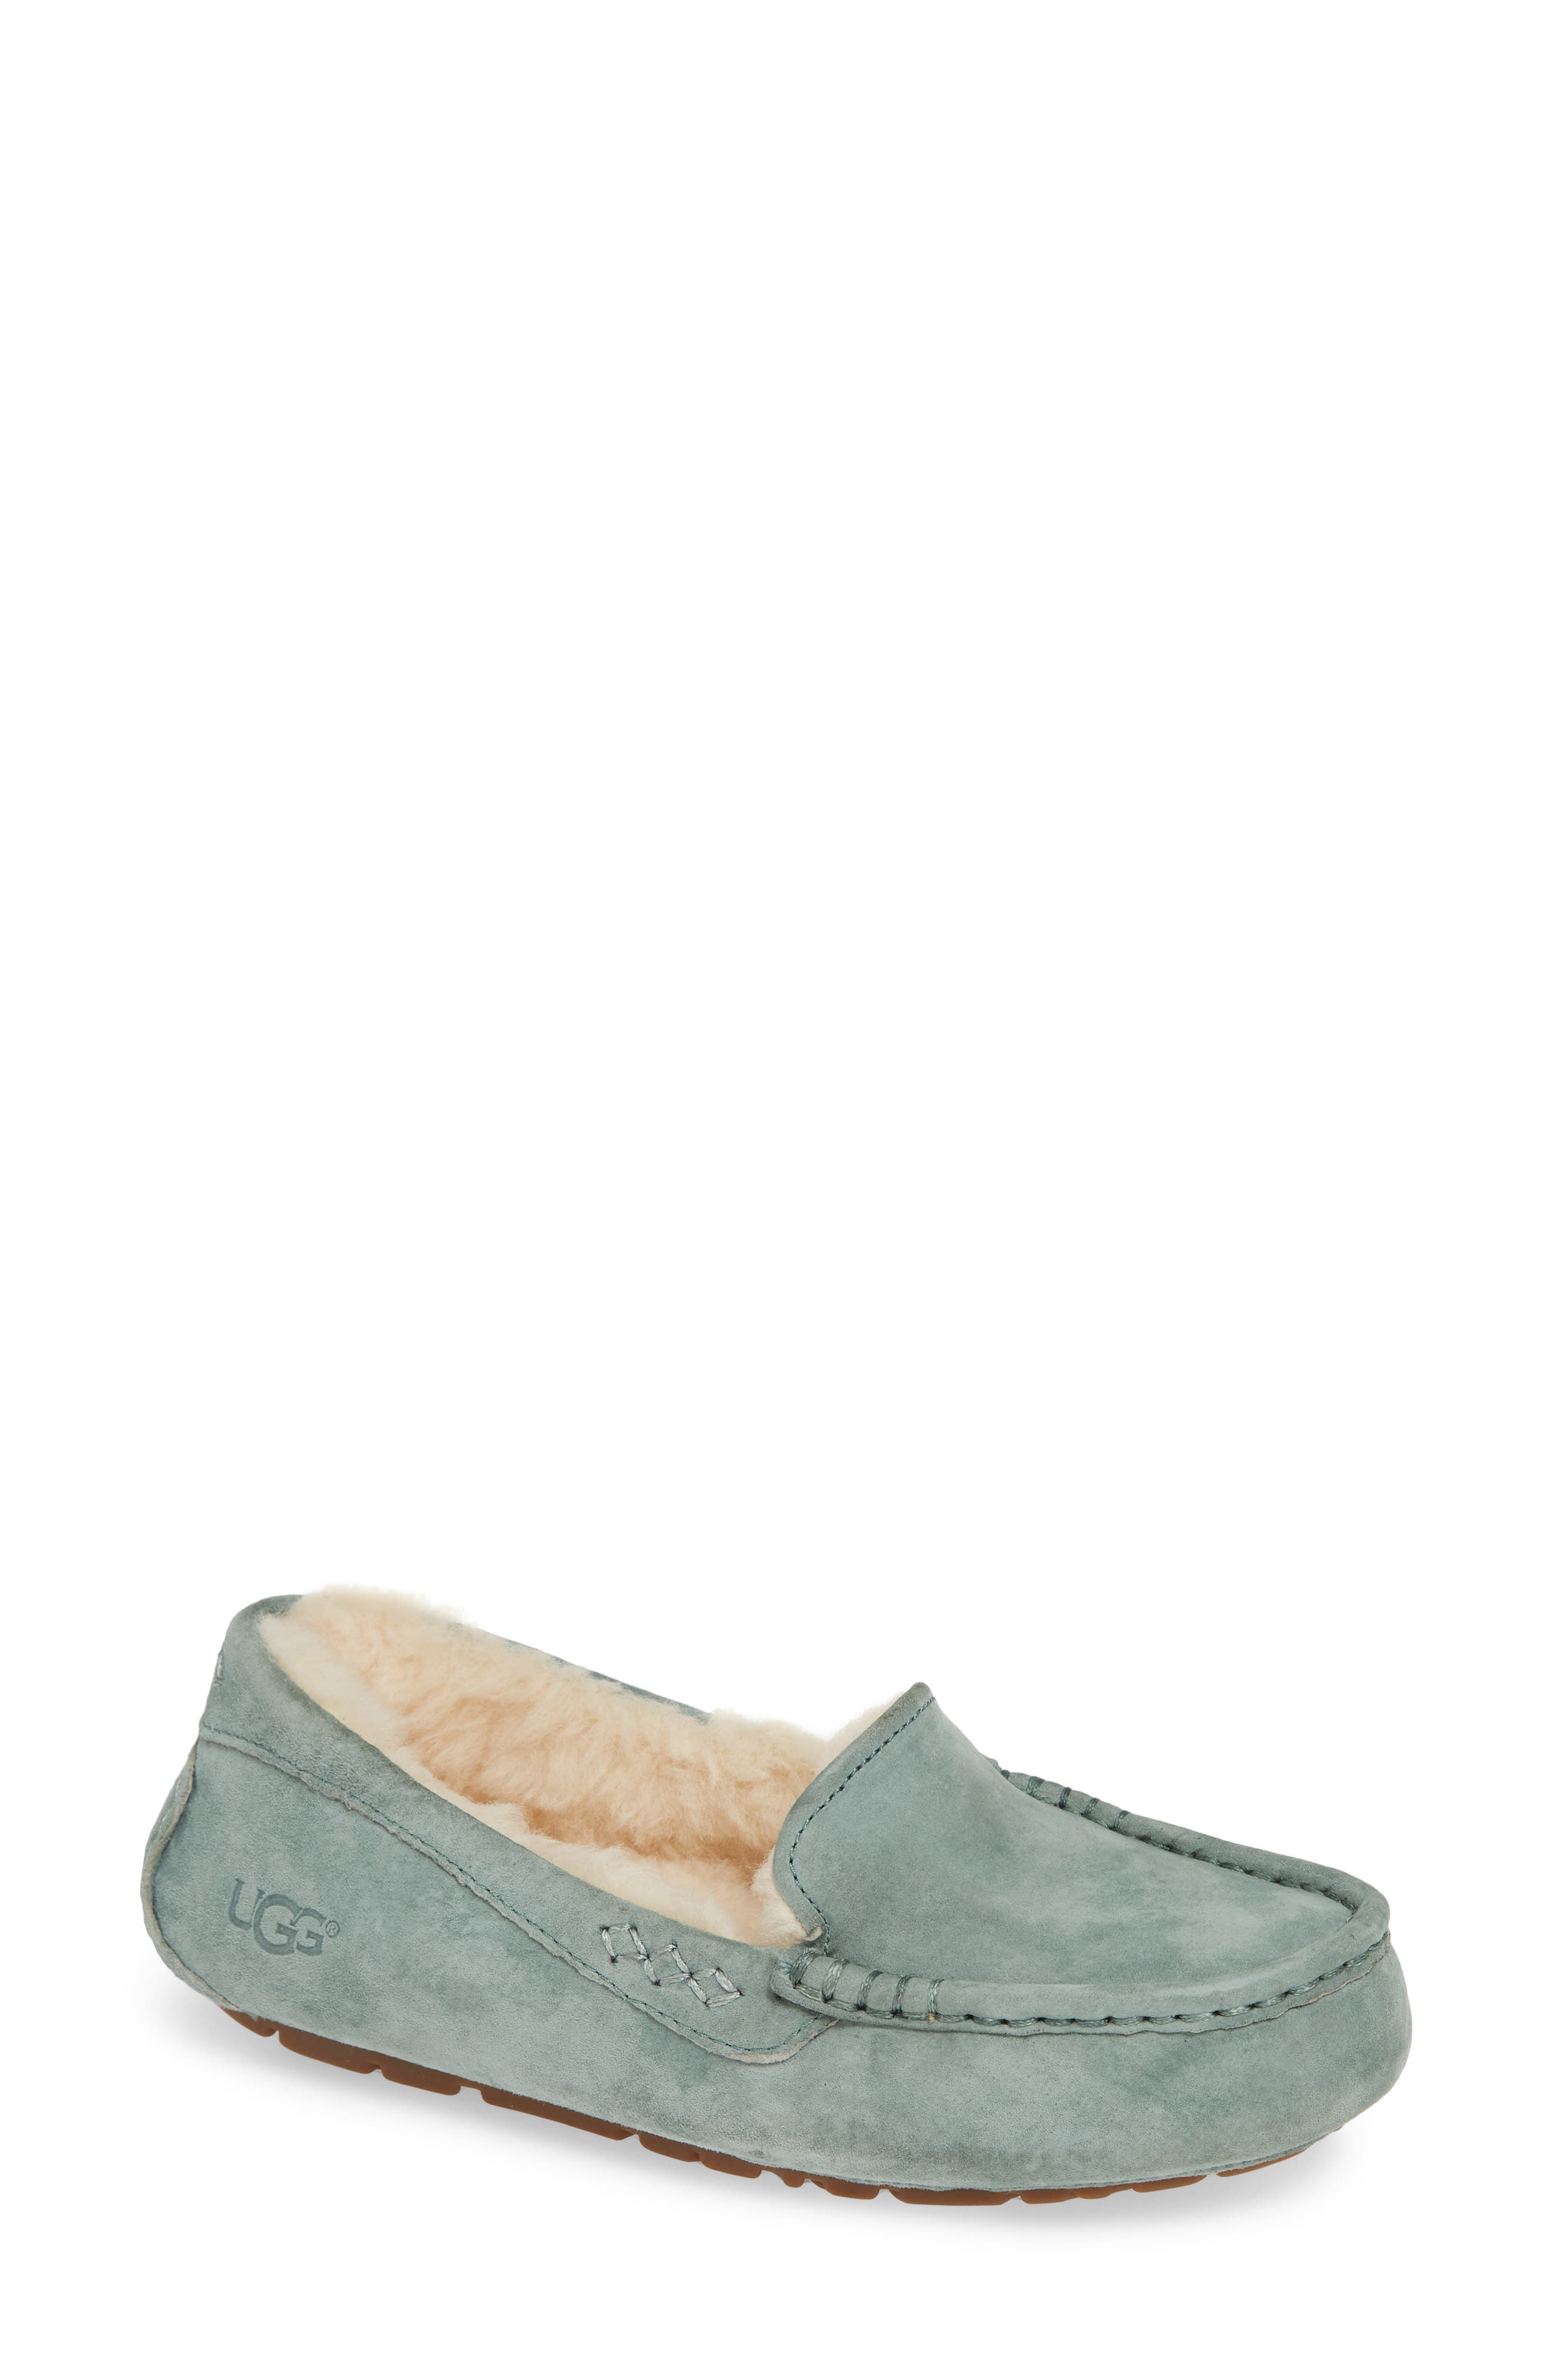 Ansley Water Resistant Slipper,                         Main,                         color, Sea Green